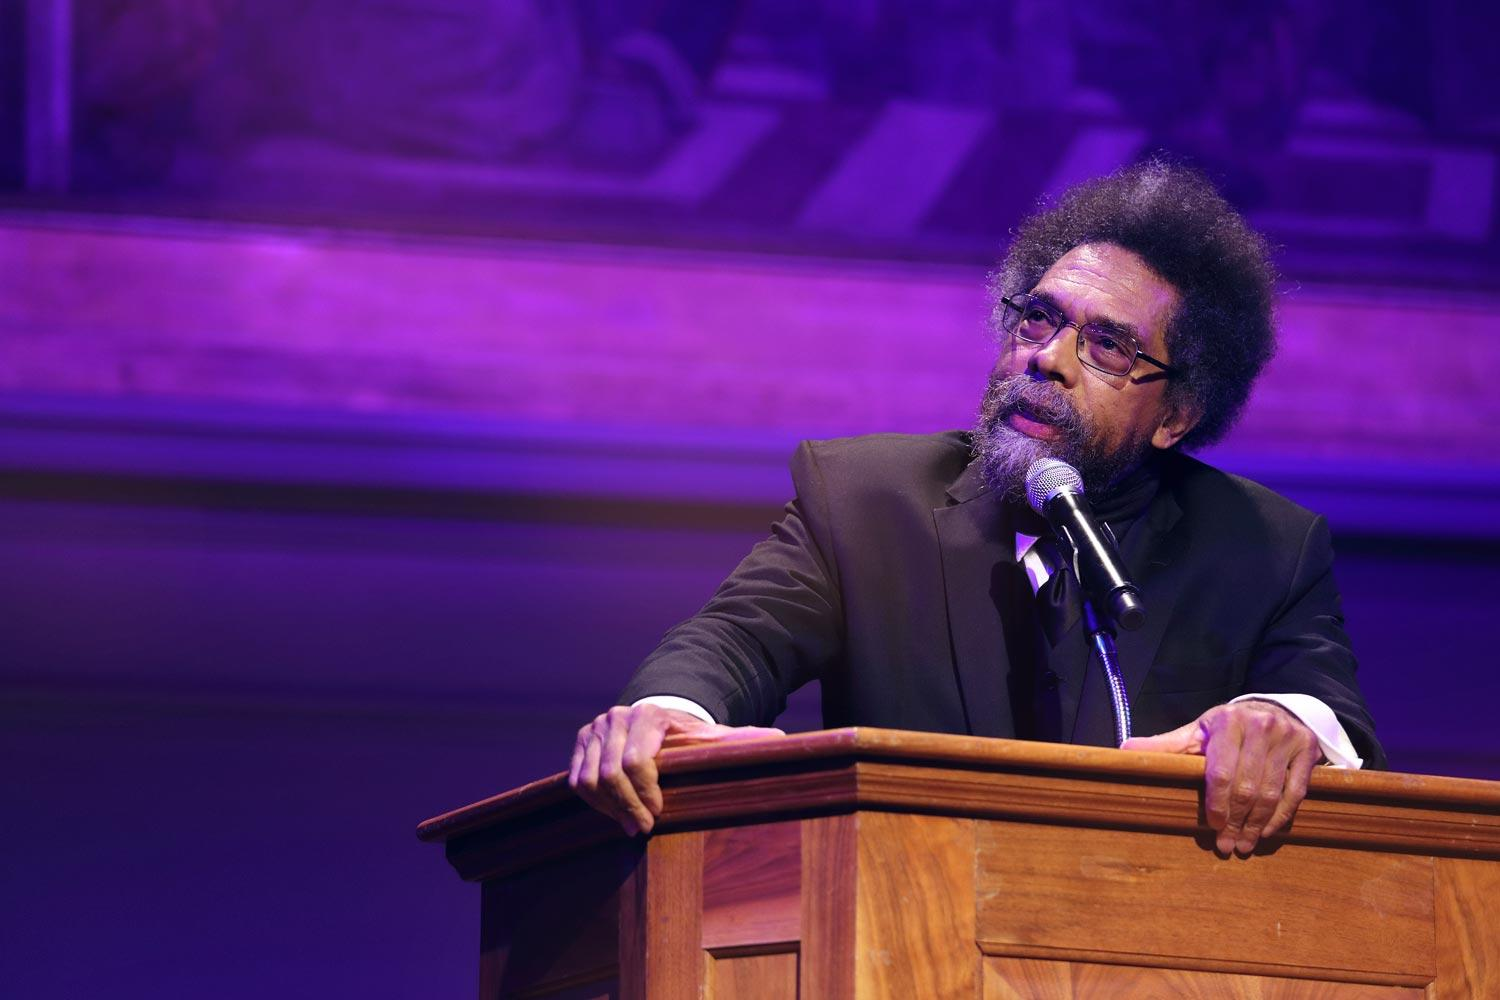 """Americans are experiencing """"an eclipse of generosity and integrity as we pursue being the richest and the smartest,"""" Harvard professor Cornel West said."""